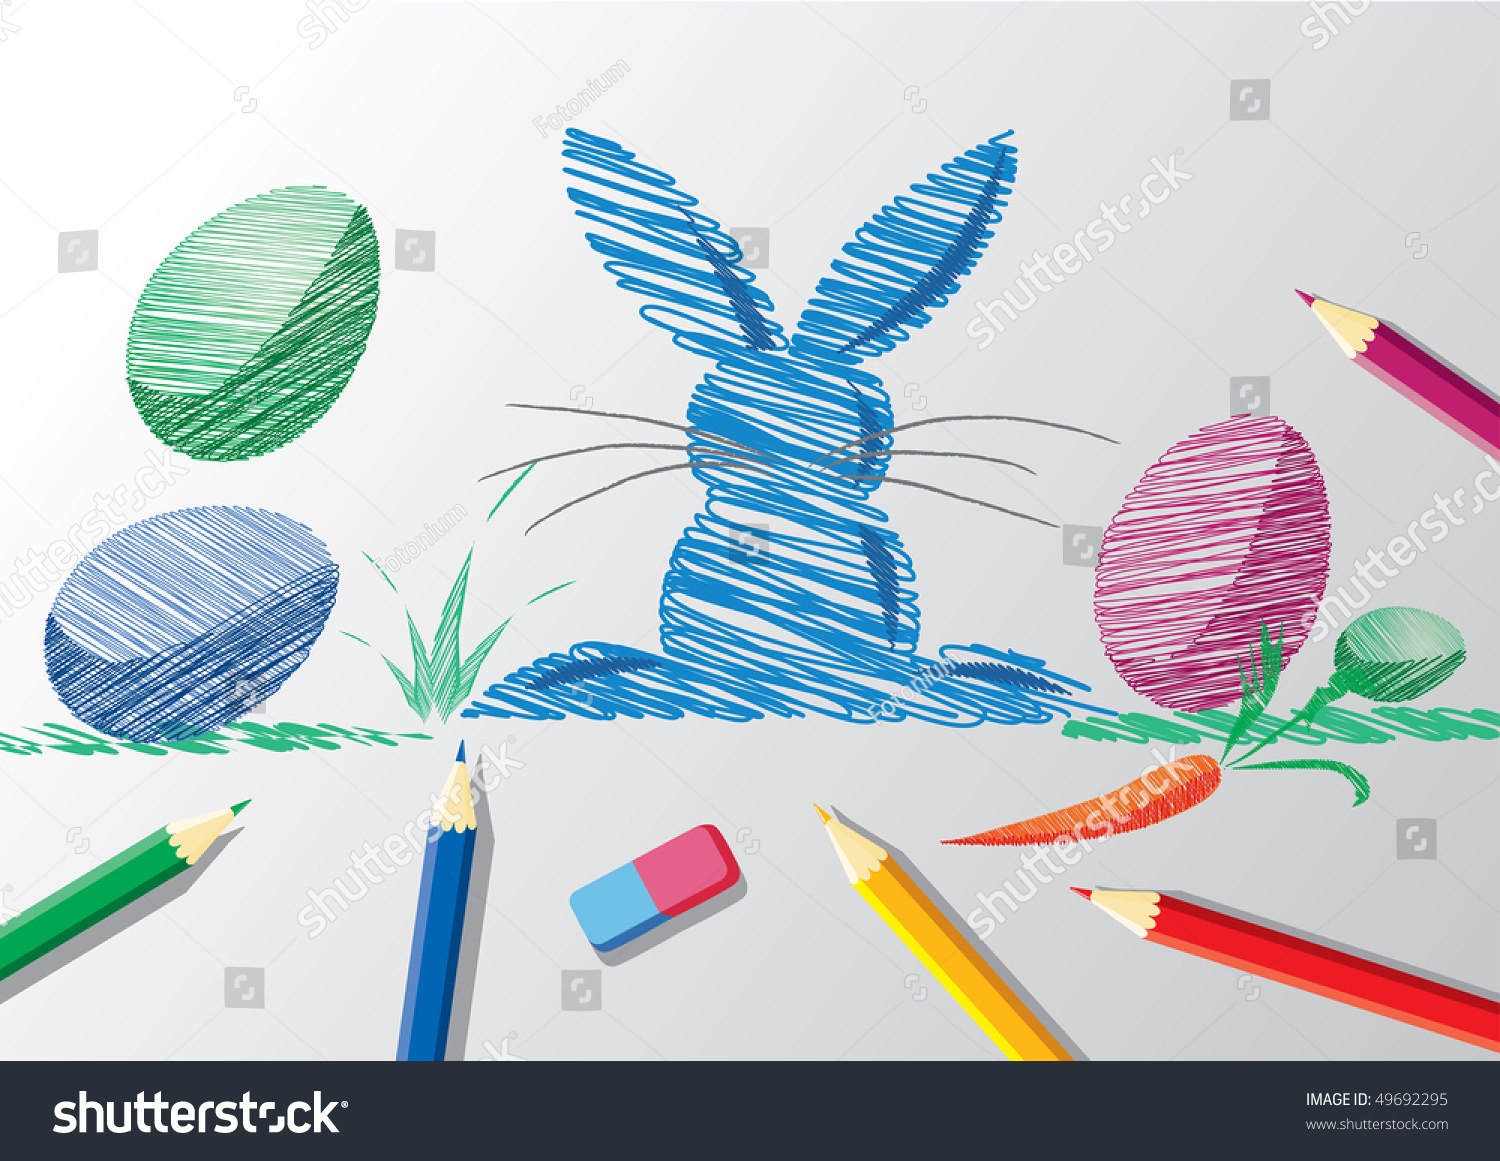 Notebook And Pen Sketch Stock Vector Art More Images Of: Pencil Sketch Easter Bunny Eggs Stock Vector 49692295